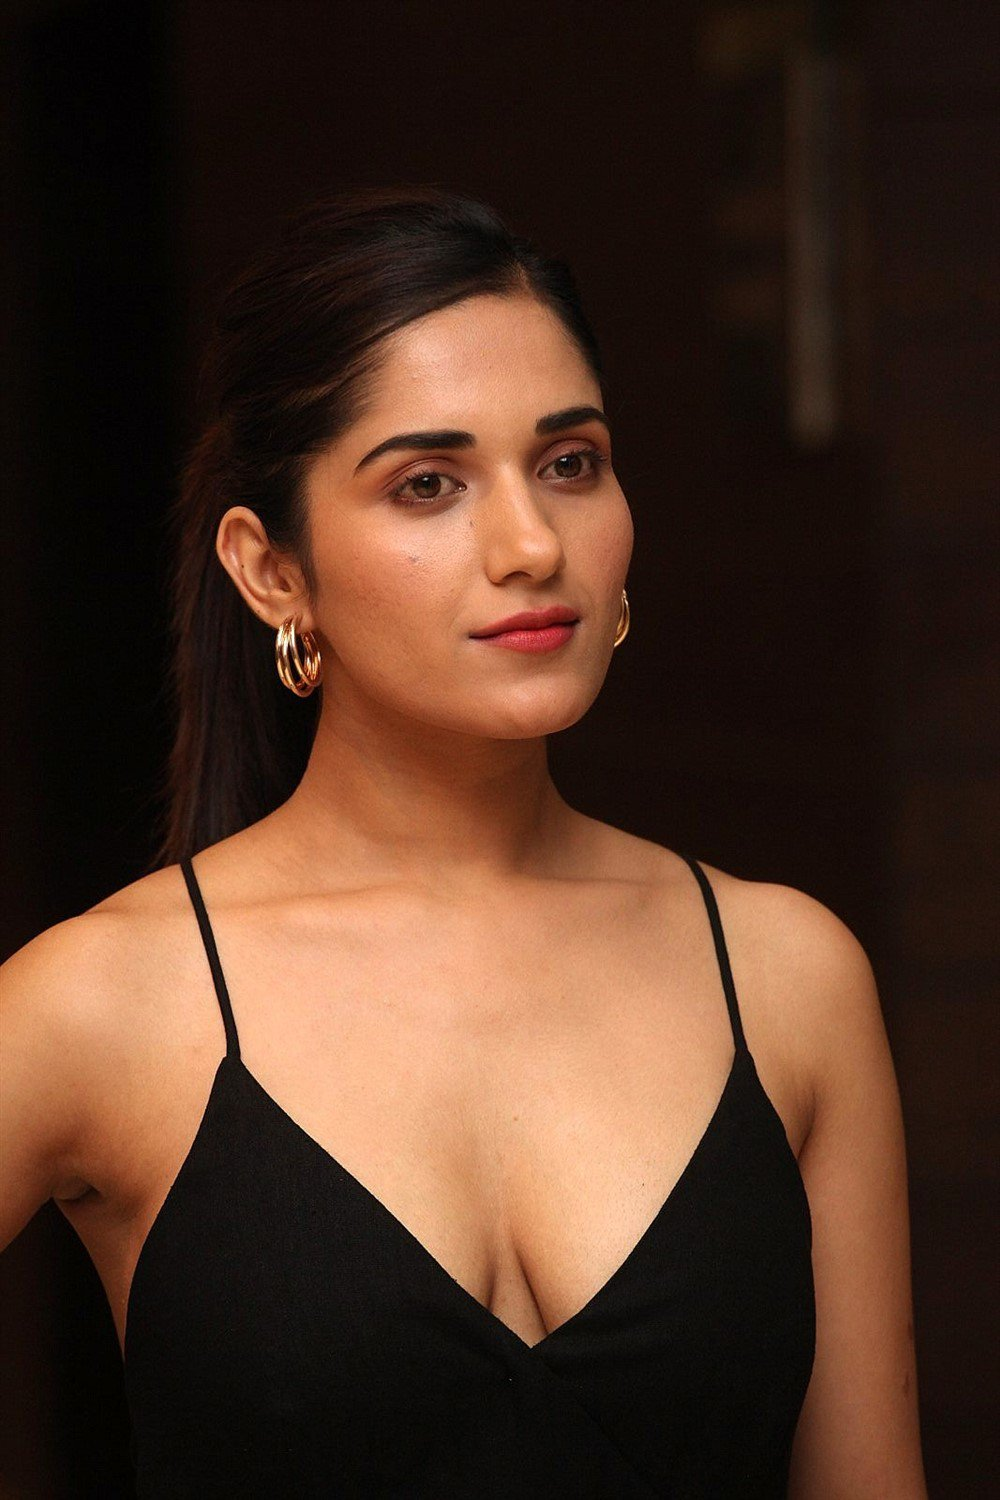 Actress Ruhani Sharma Gorgeous Hot Stills Clicked By Tejas